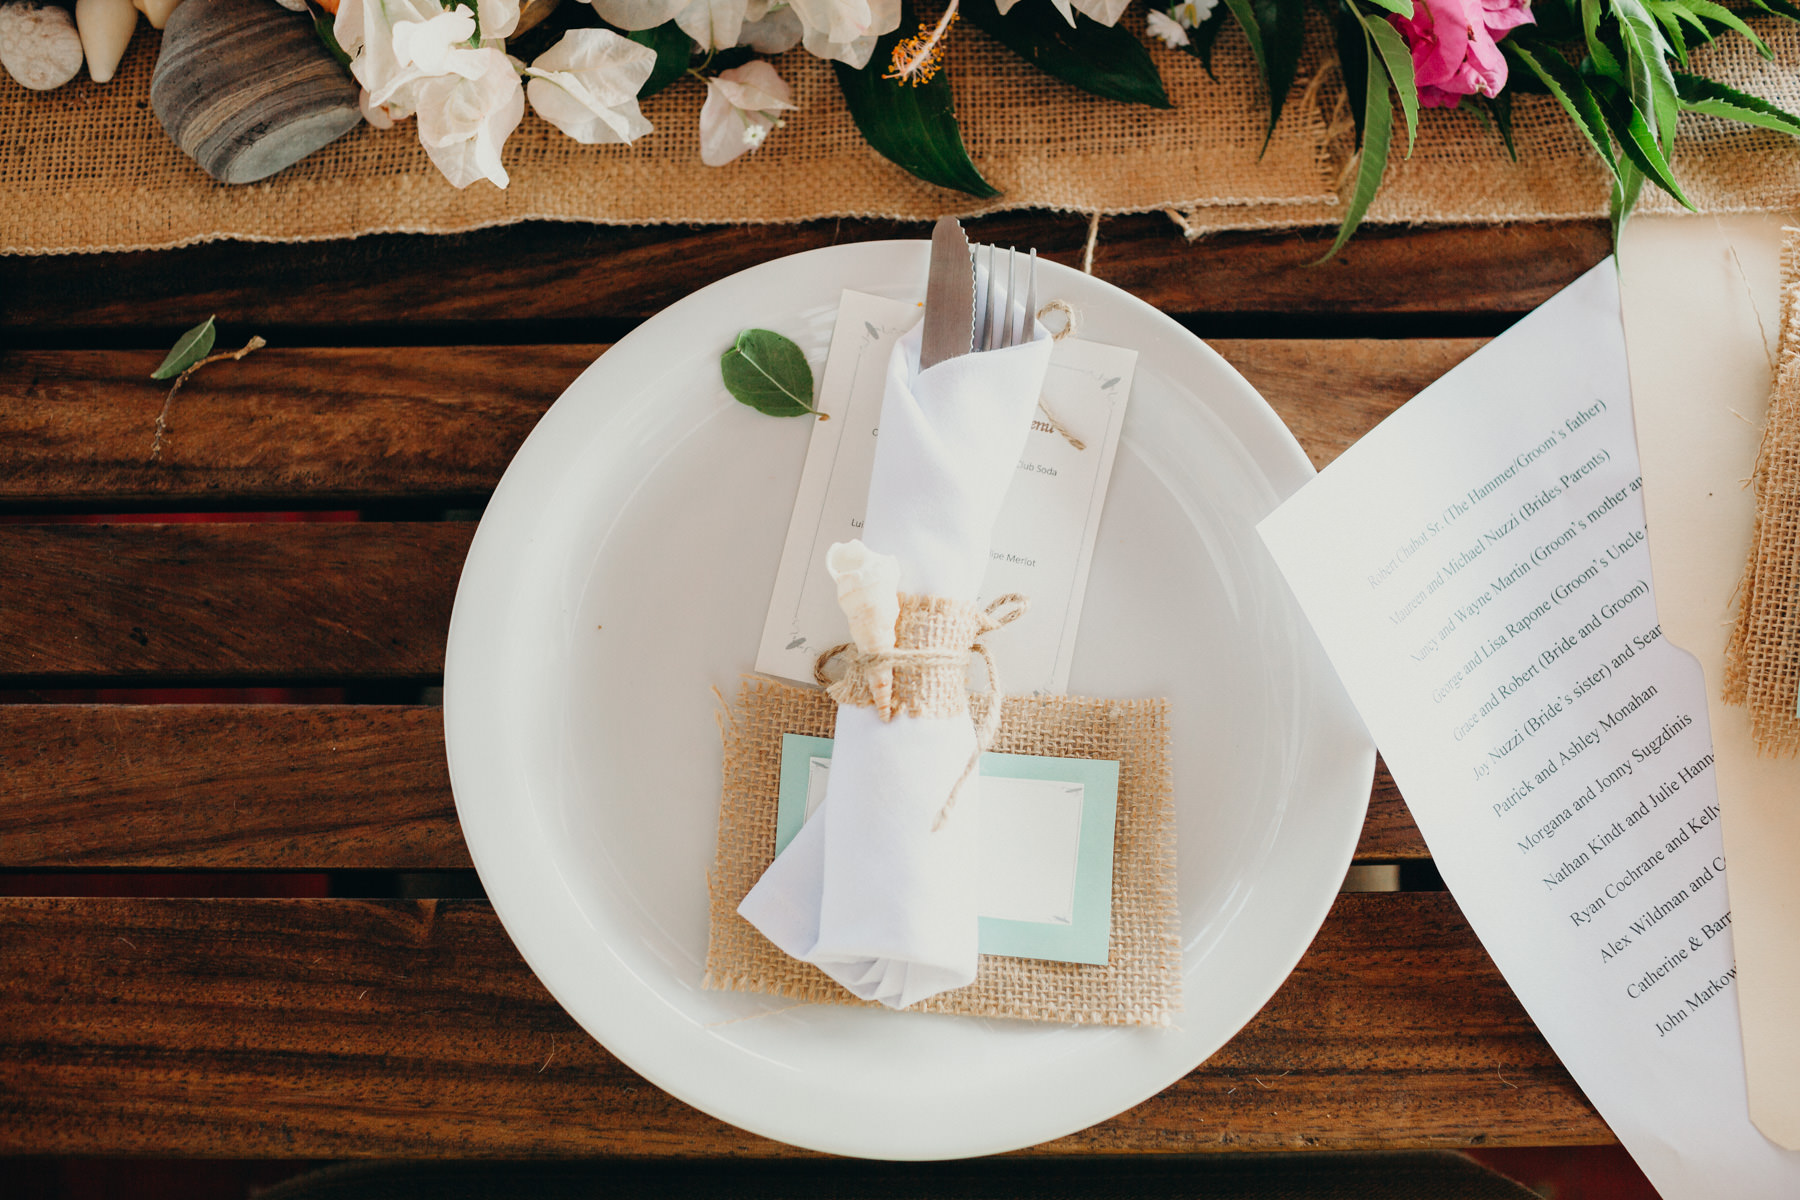 Costa Rica beach wedding decor table ideas